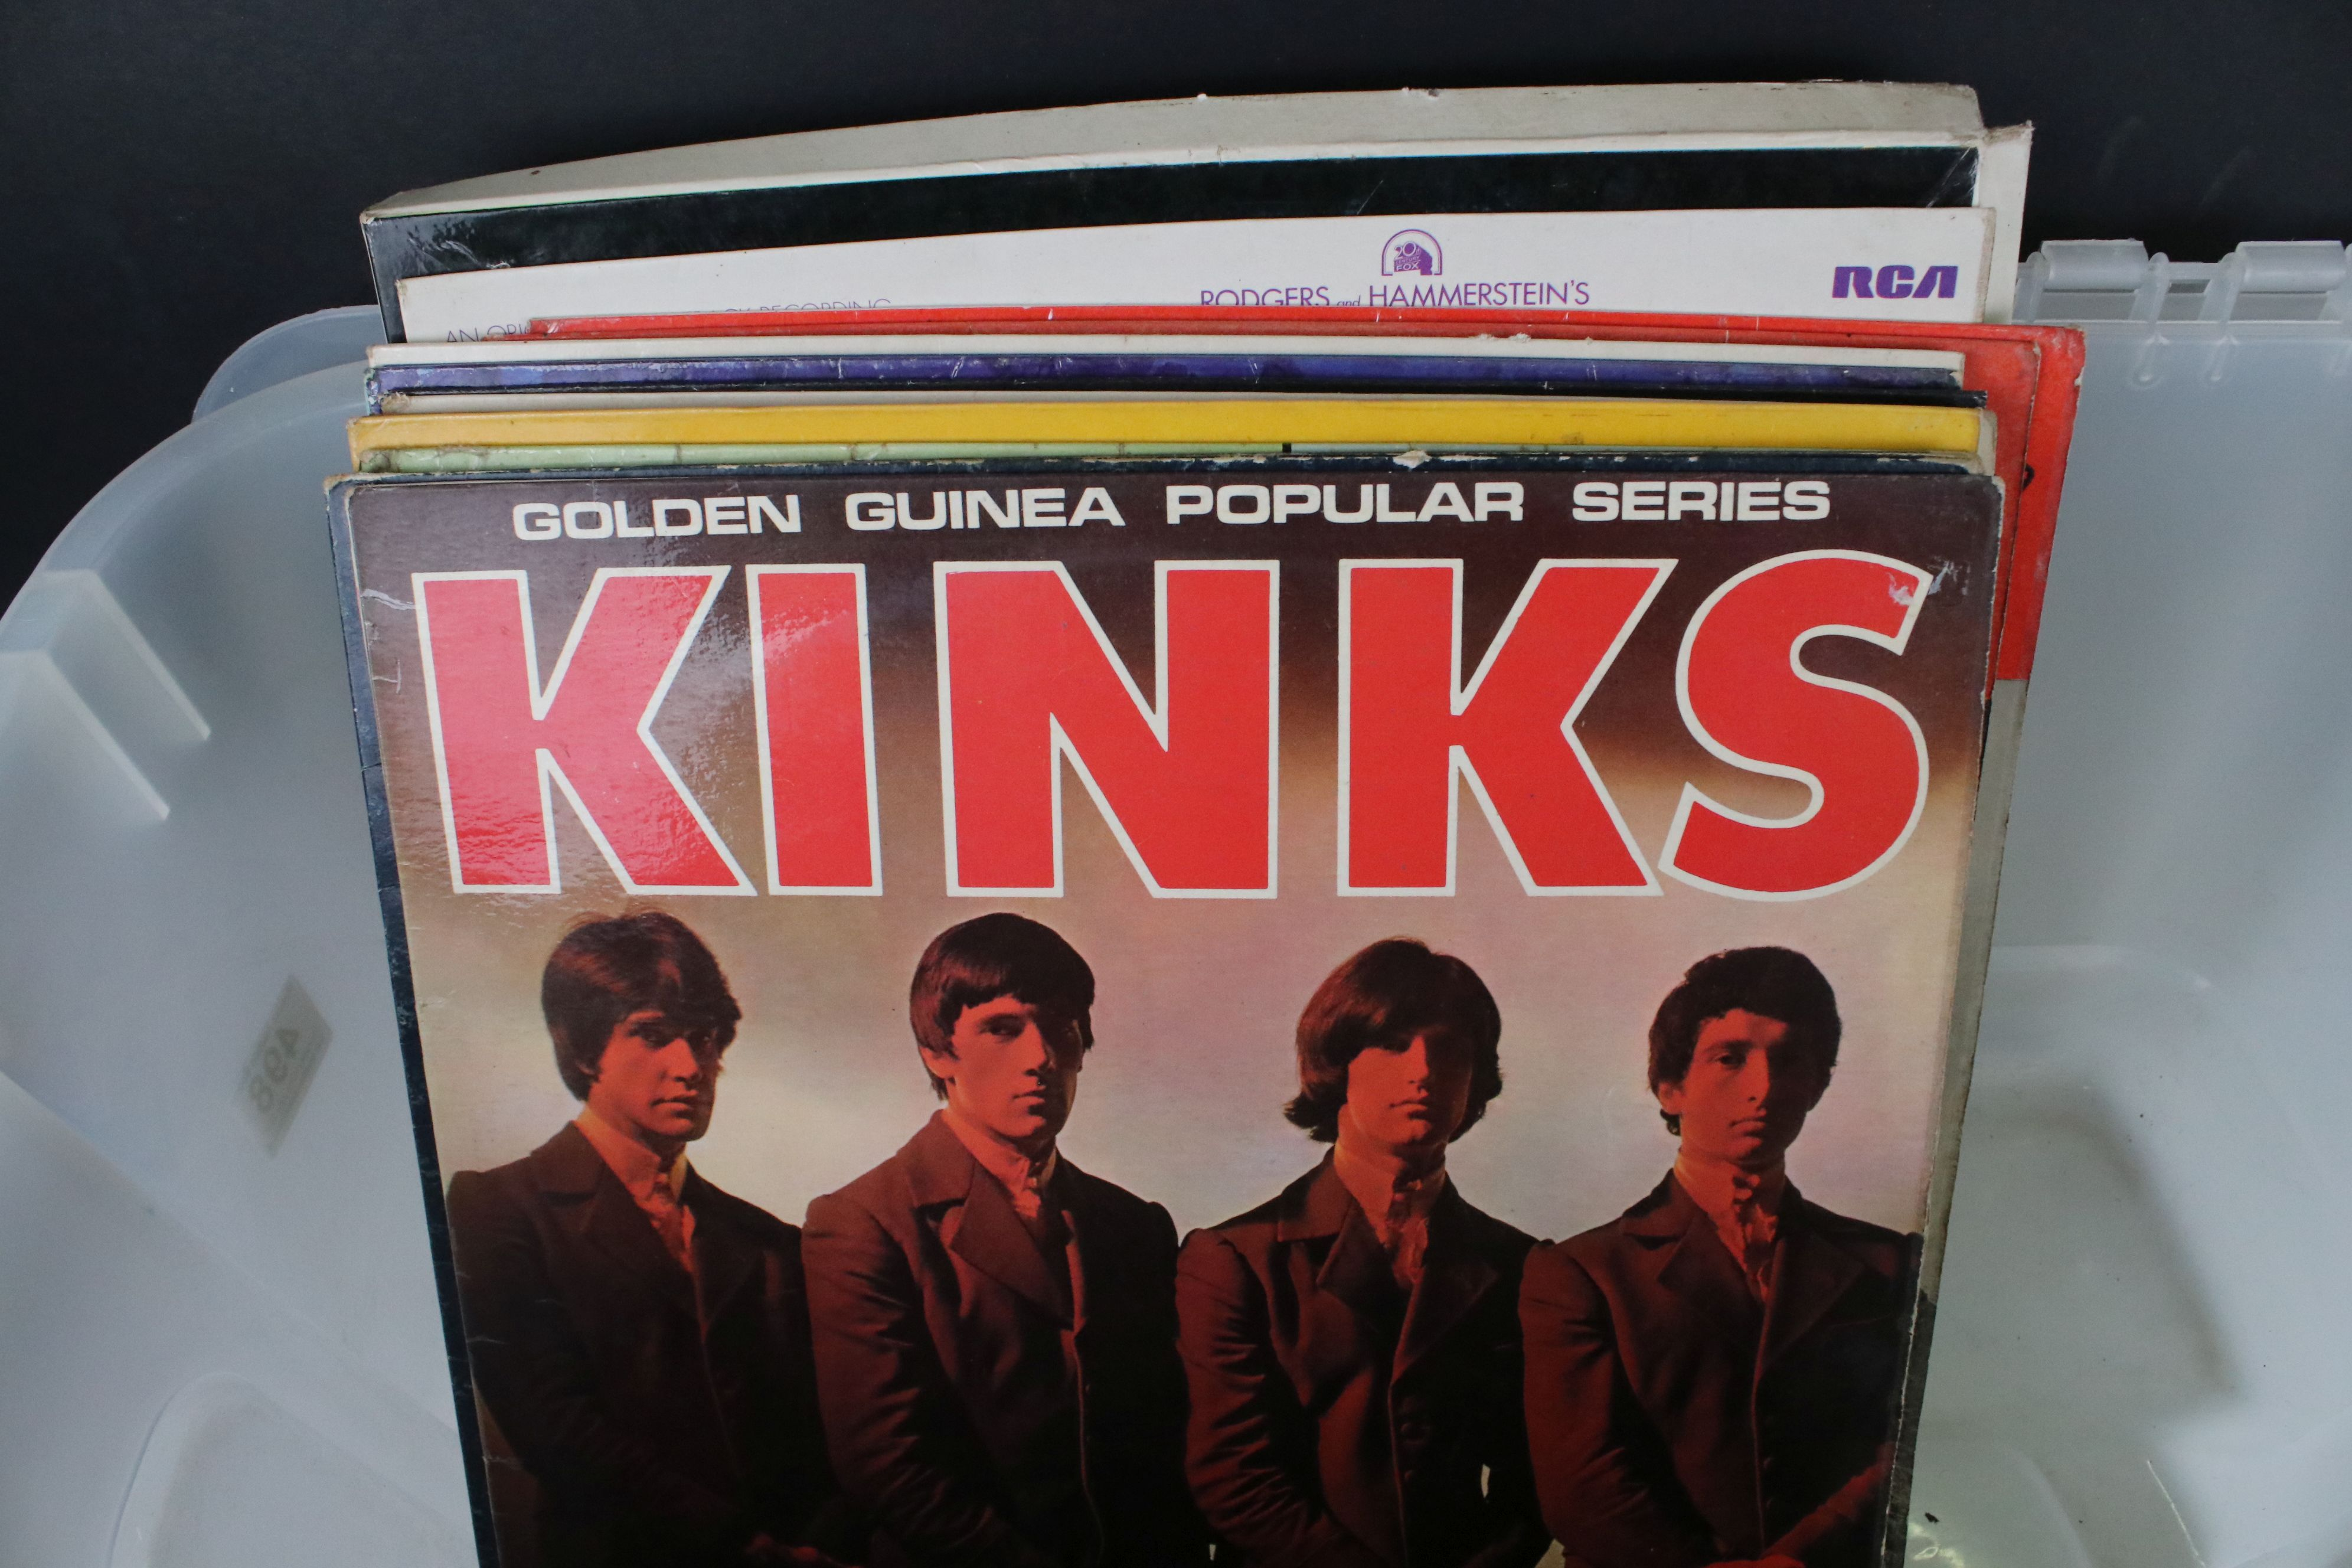 Vinyl - Rock / Pop / Classical - collection of approx 30 LP's to include The Rolling Stones (Spanish - Image 7 of 9